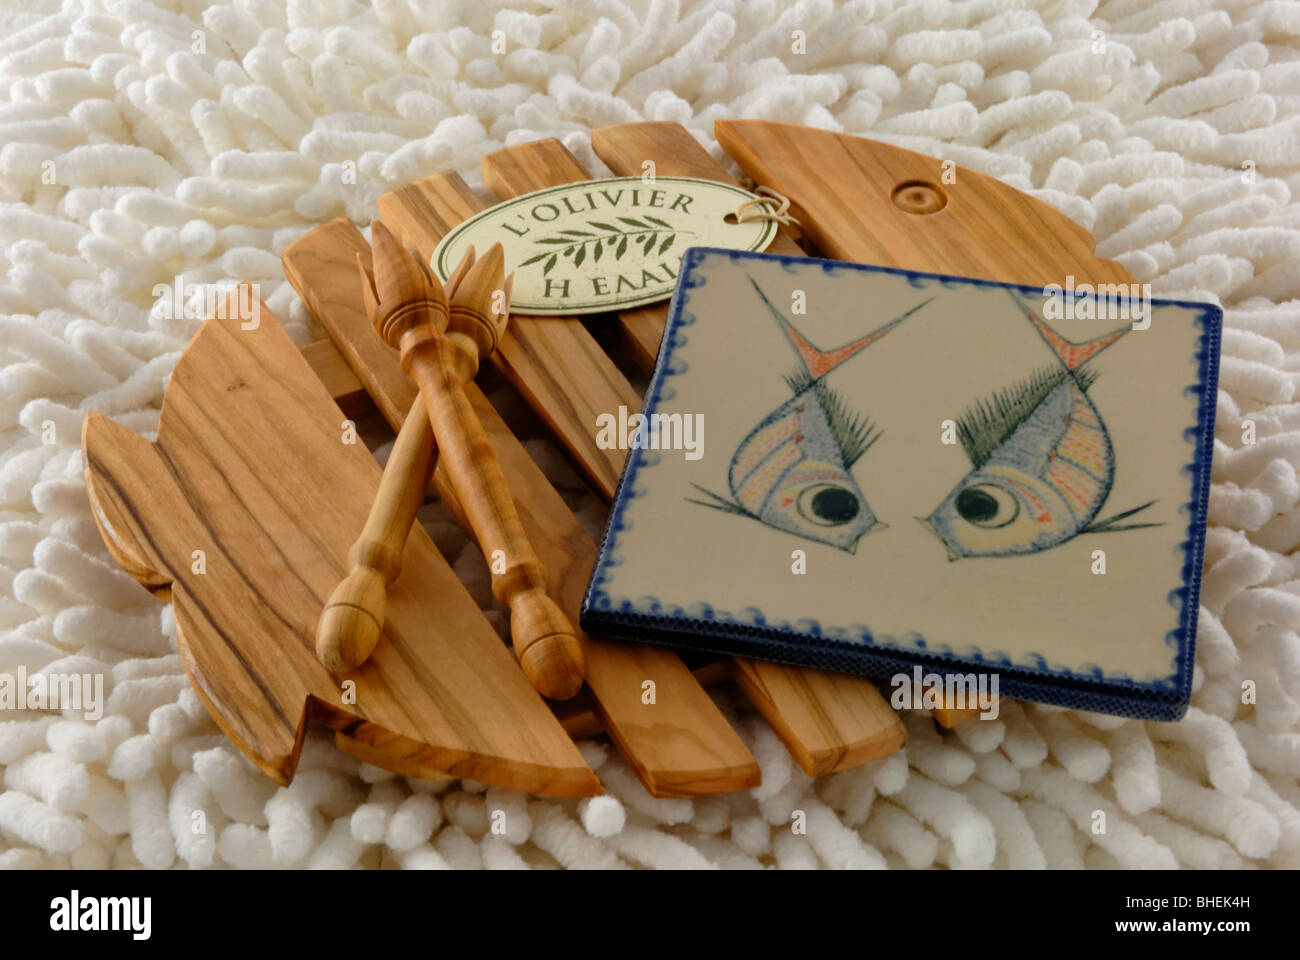 A wooden trivet two wooden olive forks and a ceramic art tile from a wooden trivet two wooden olive forks and a ceramic art tile from loliver the loliver a ceramic gallery and shop is locate dailygadgetfo Images